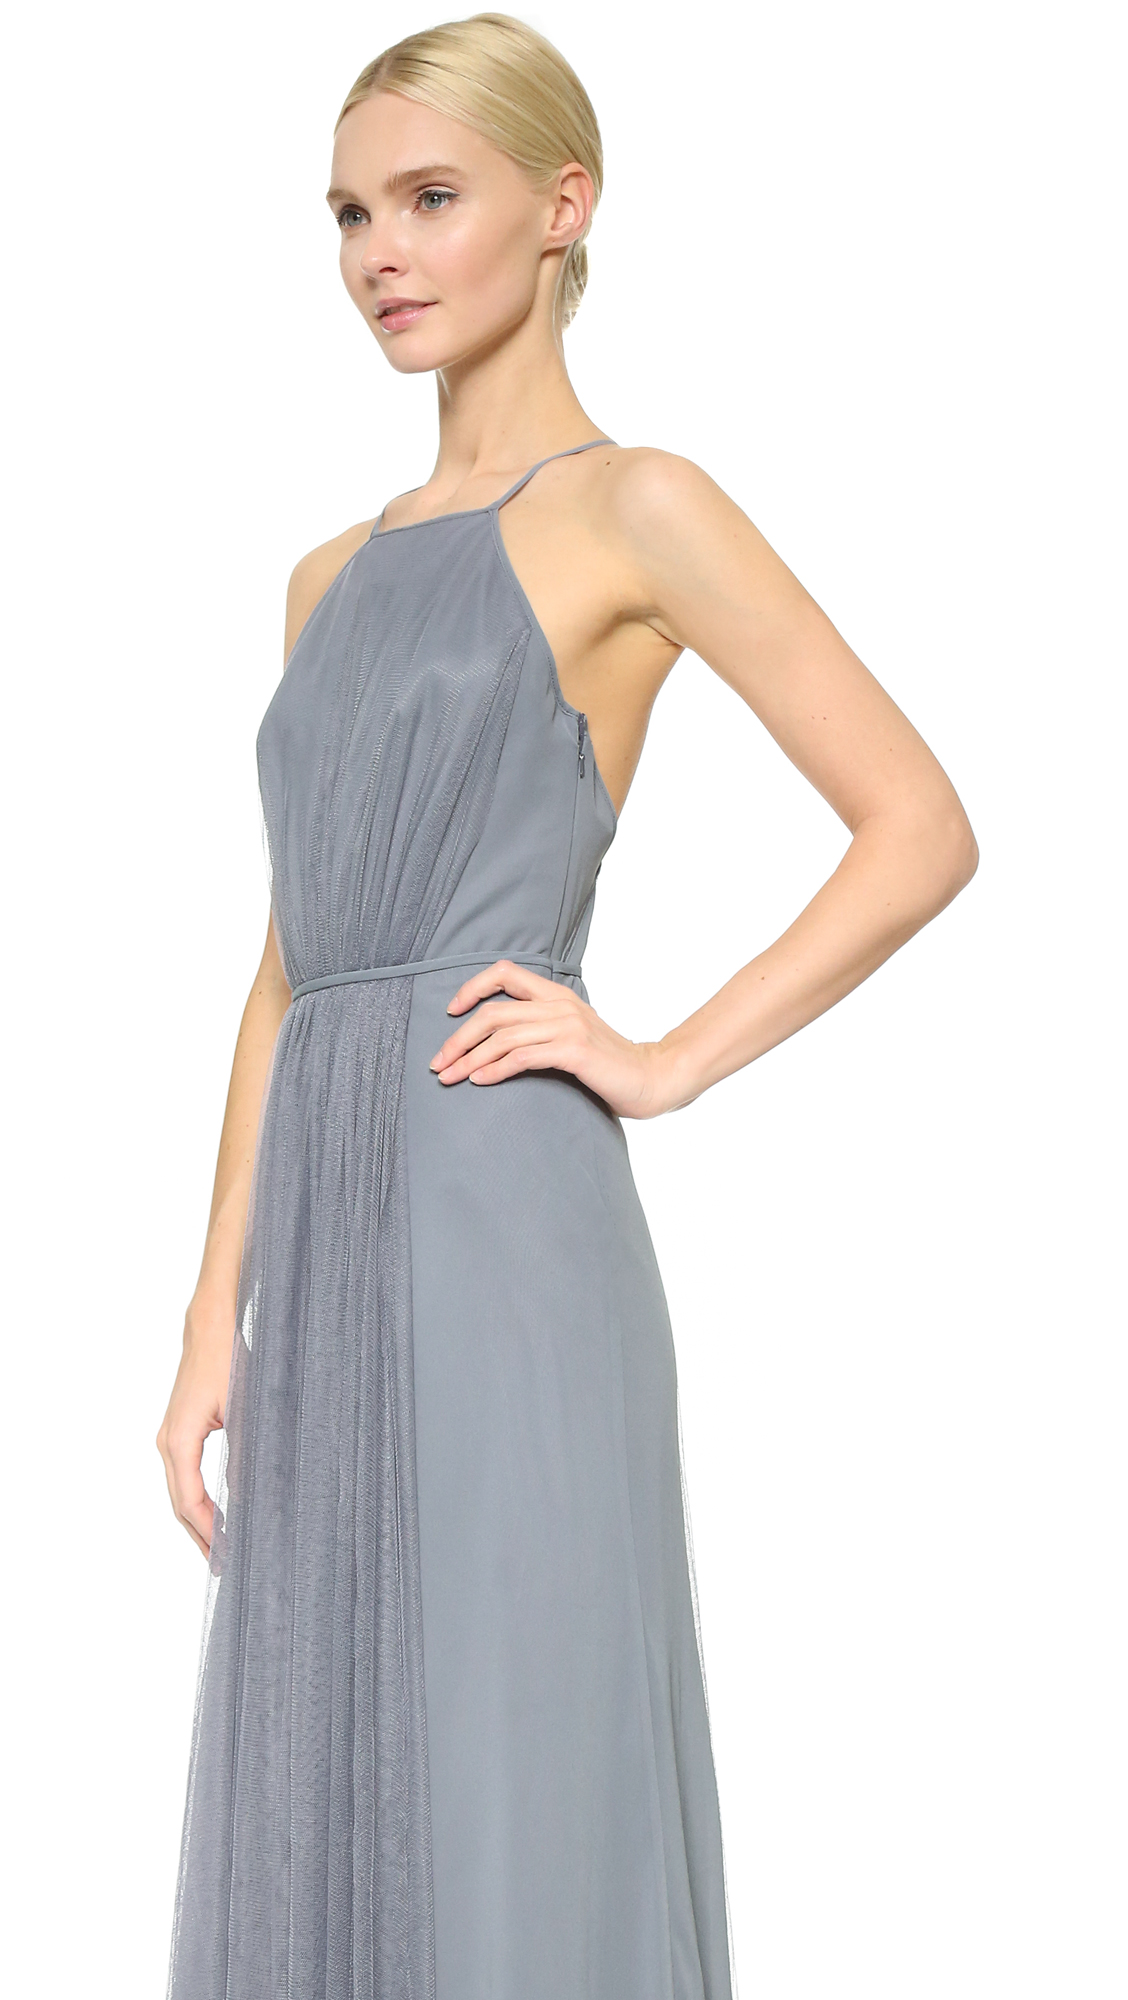 Monique Lhuillier Bridesmaids Halter Dress with Tulle Panel | SHOPBOP